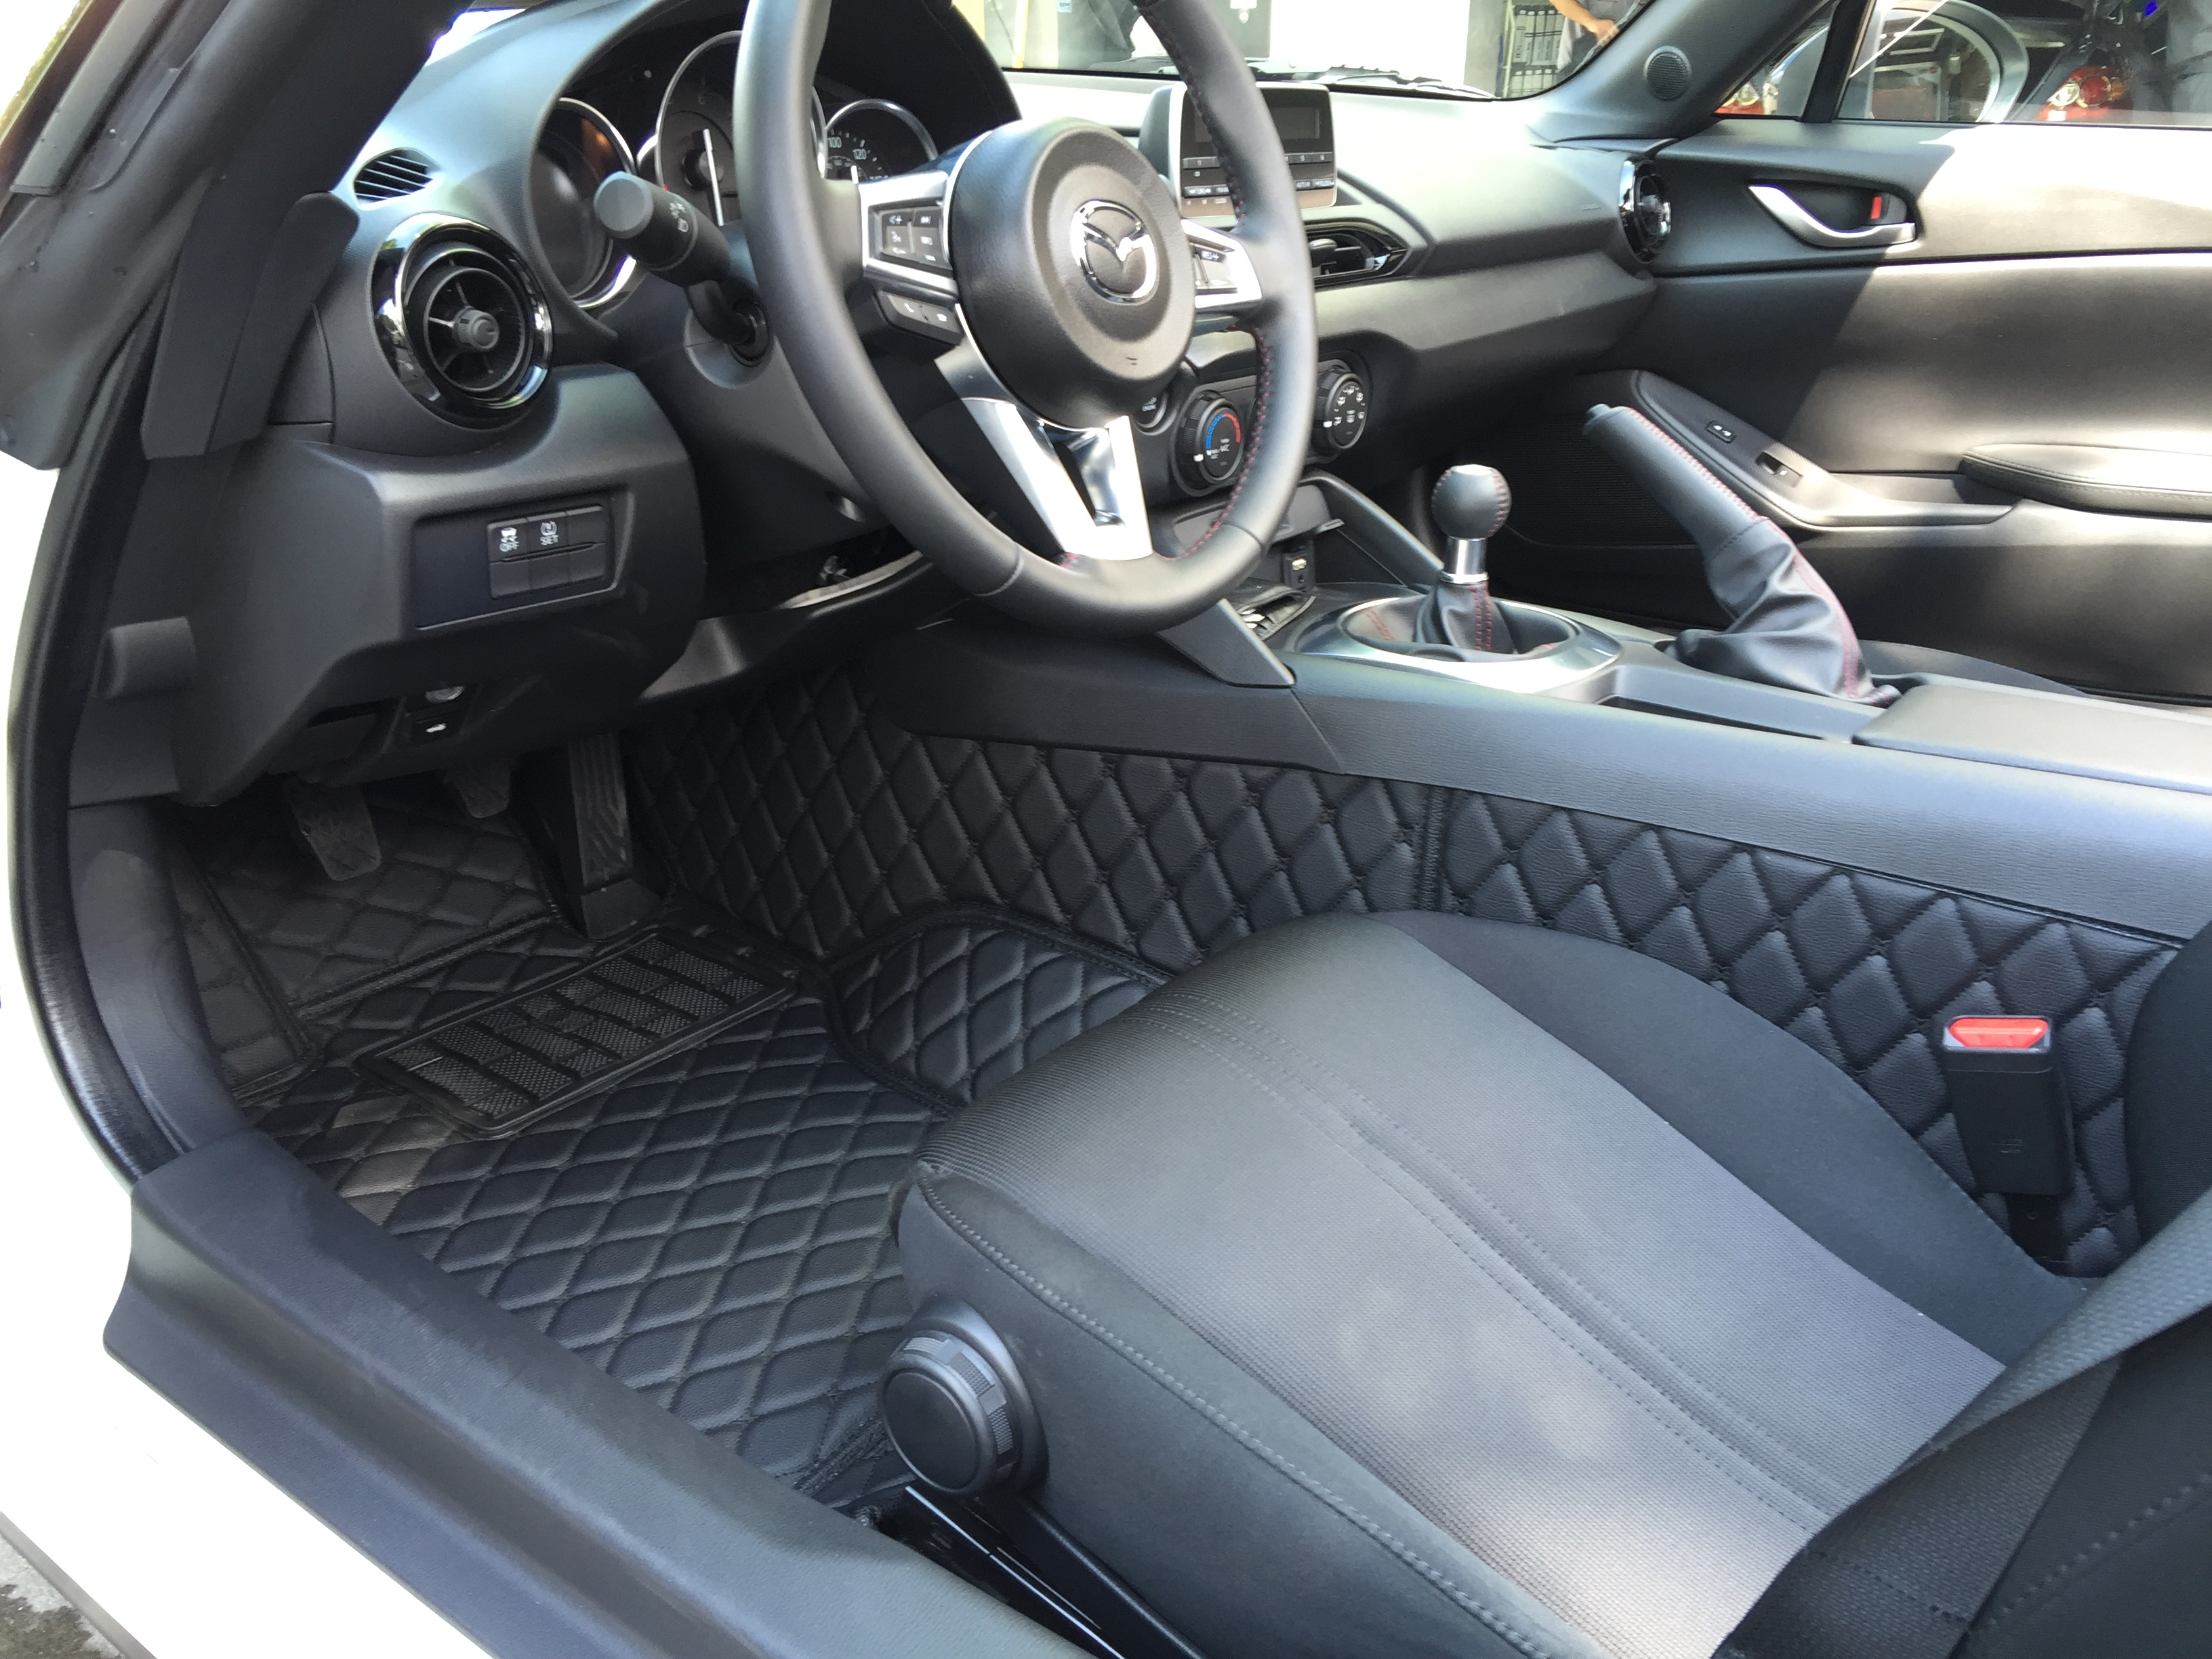 Group buy 2 quilted leather trunk liner and floor mats for miata nd st rf mx 5 miata forum